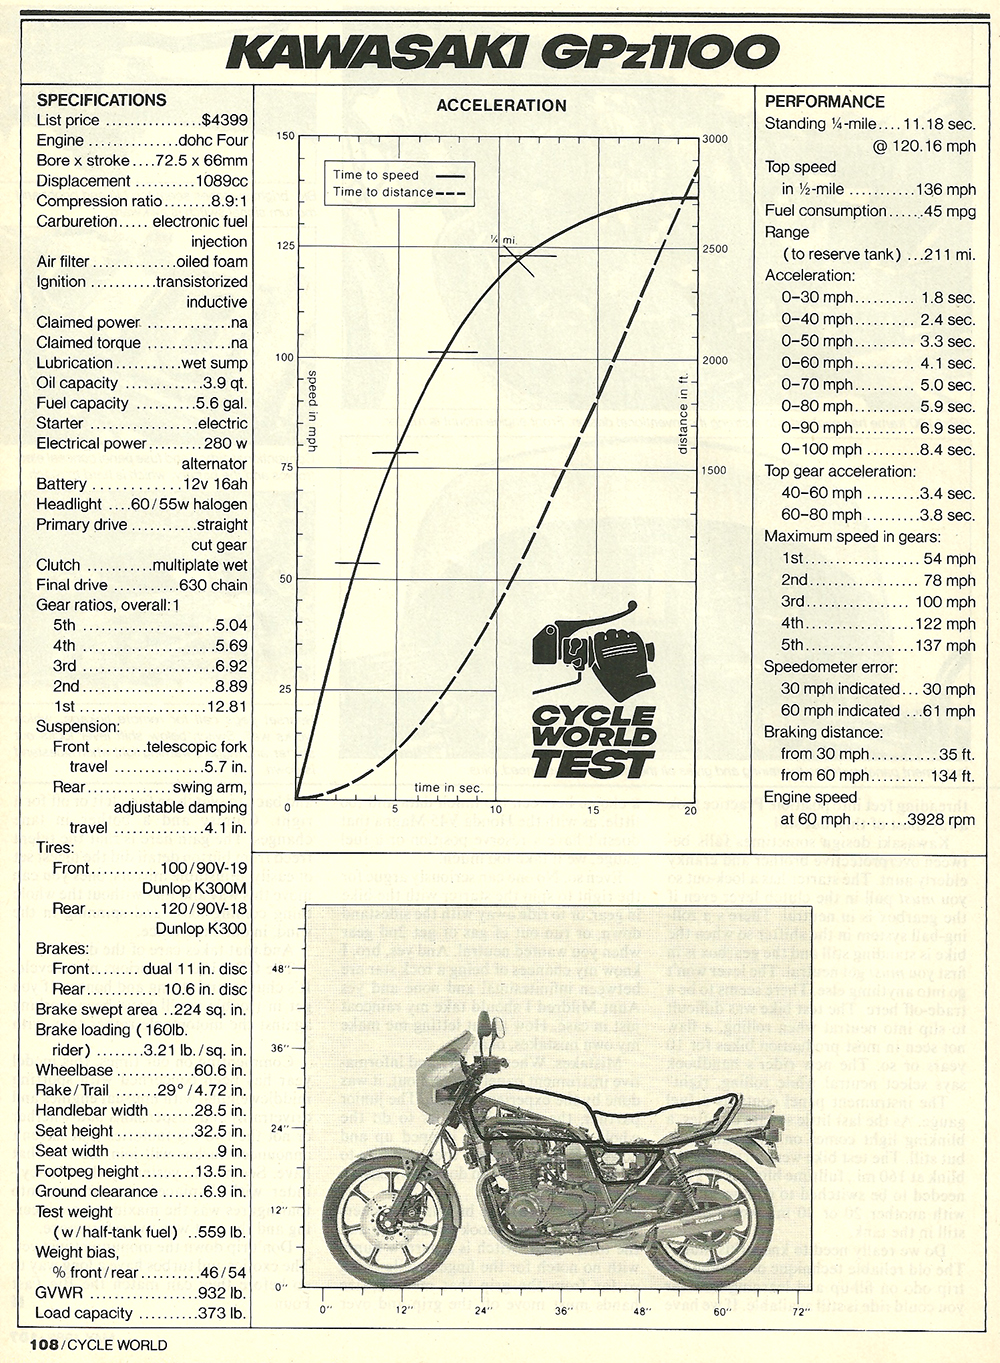 1982 Kawasaki GPz1100 road test 06.jpg